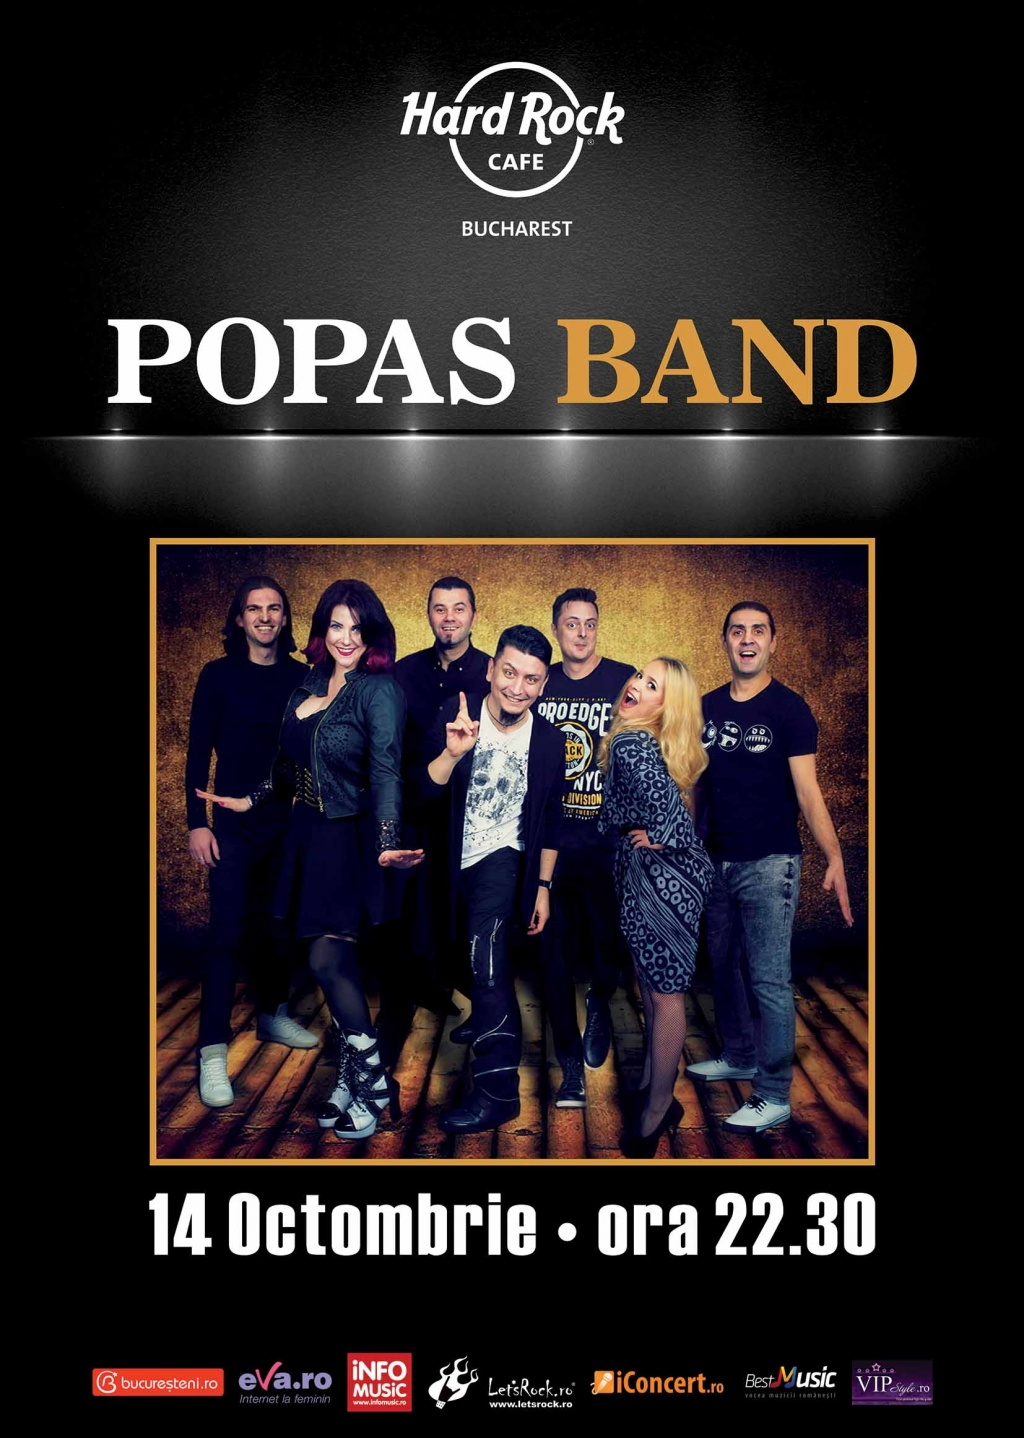 Popas Band concerteaza la Hard Rock Cafe pe 14 octombrie